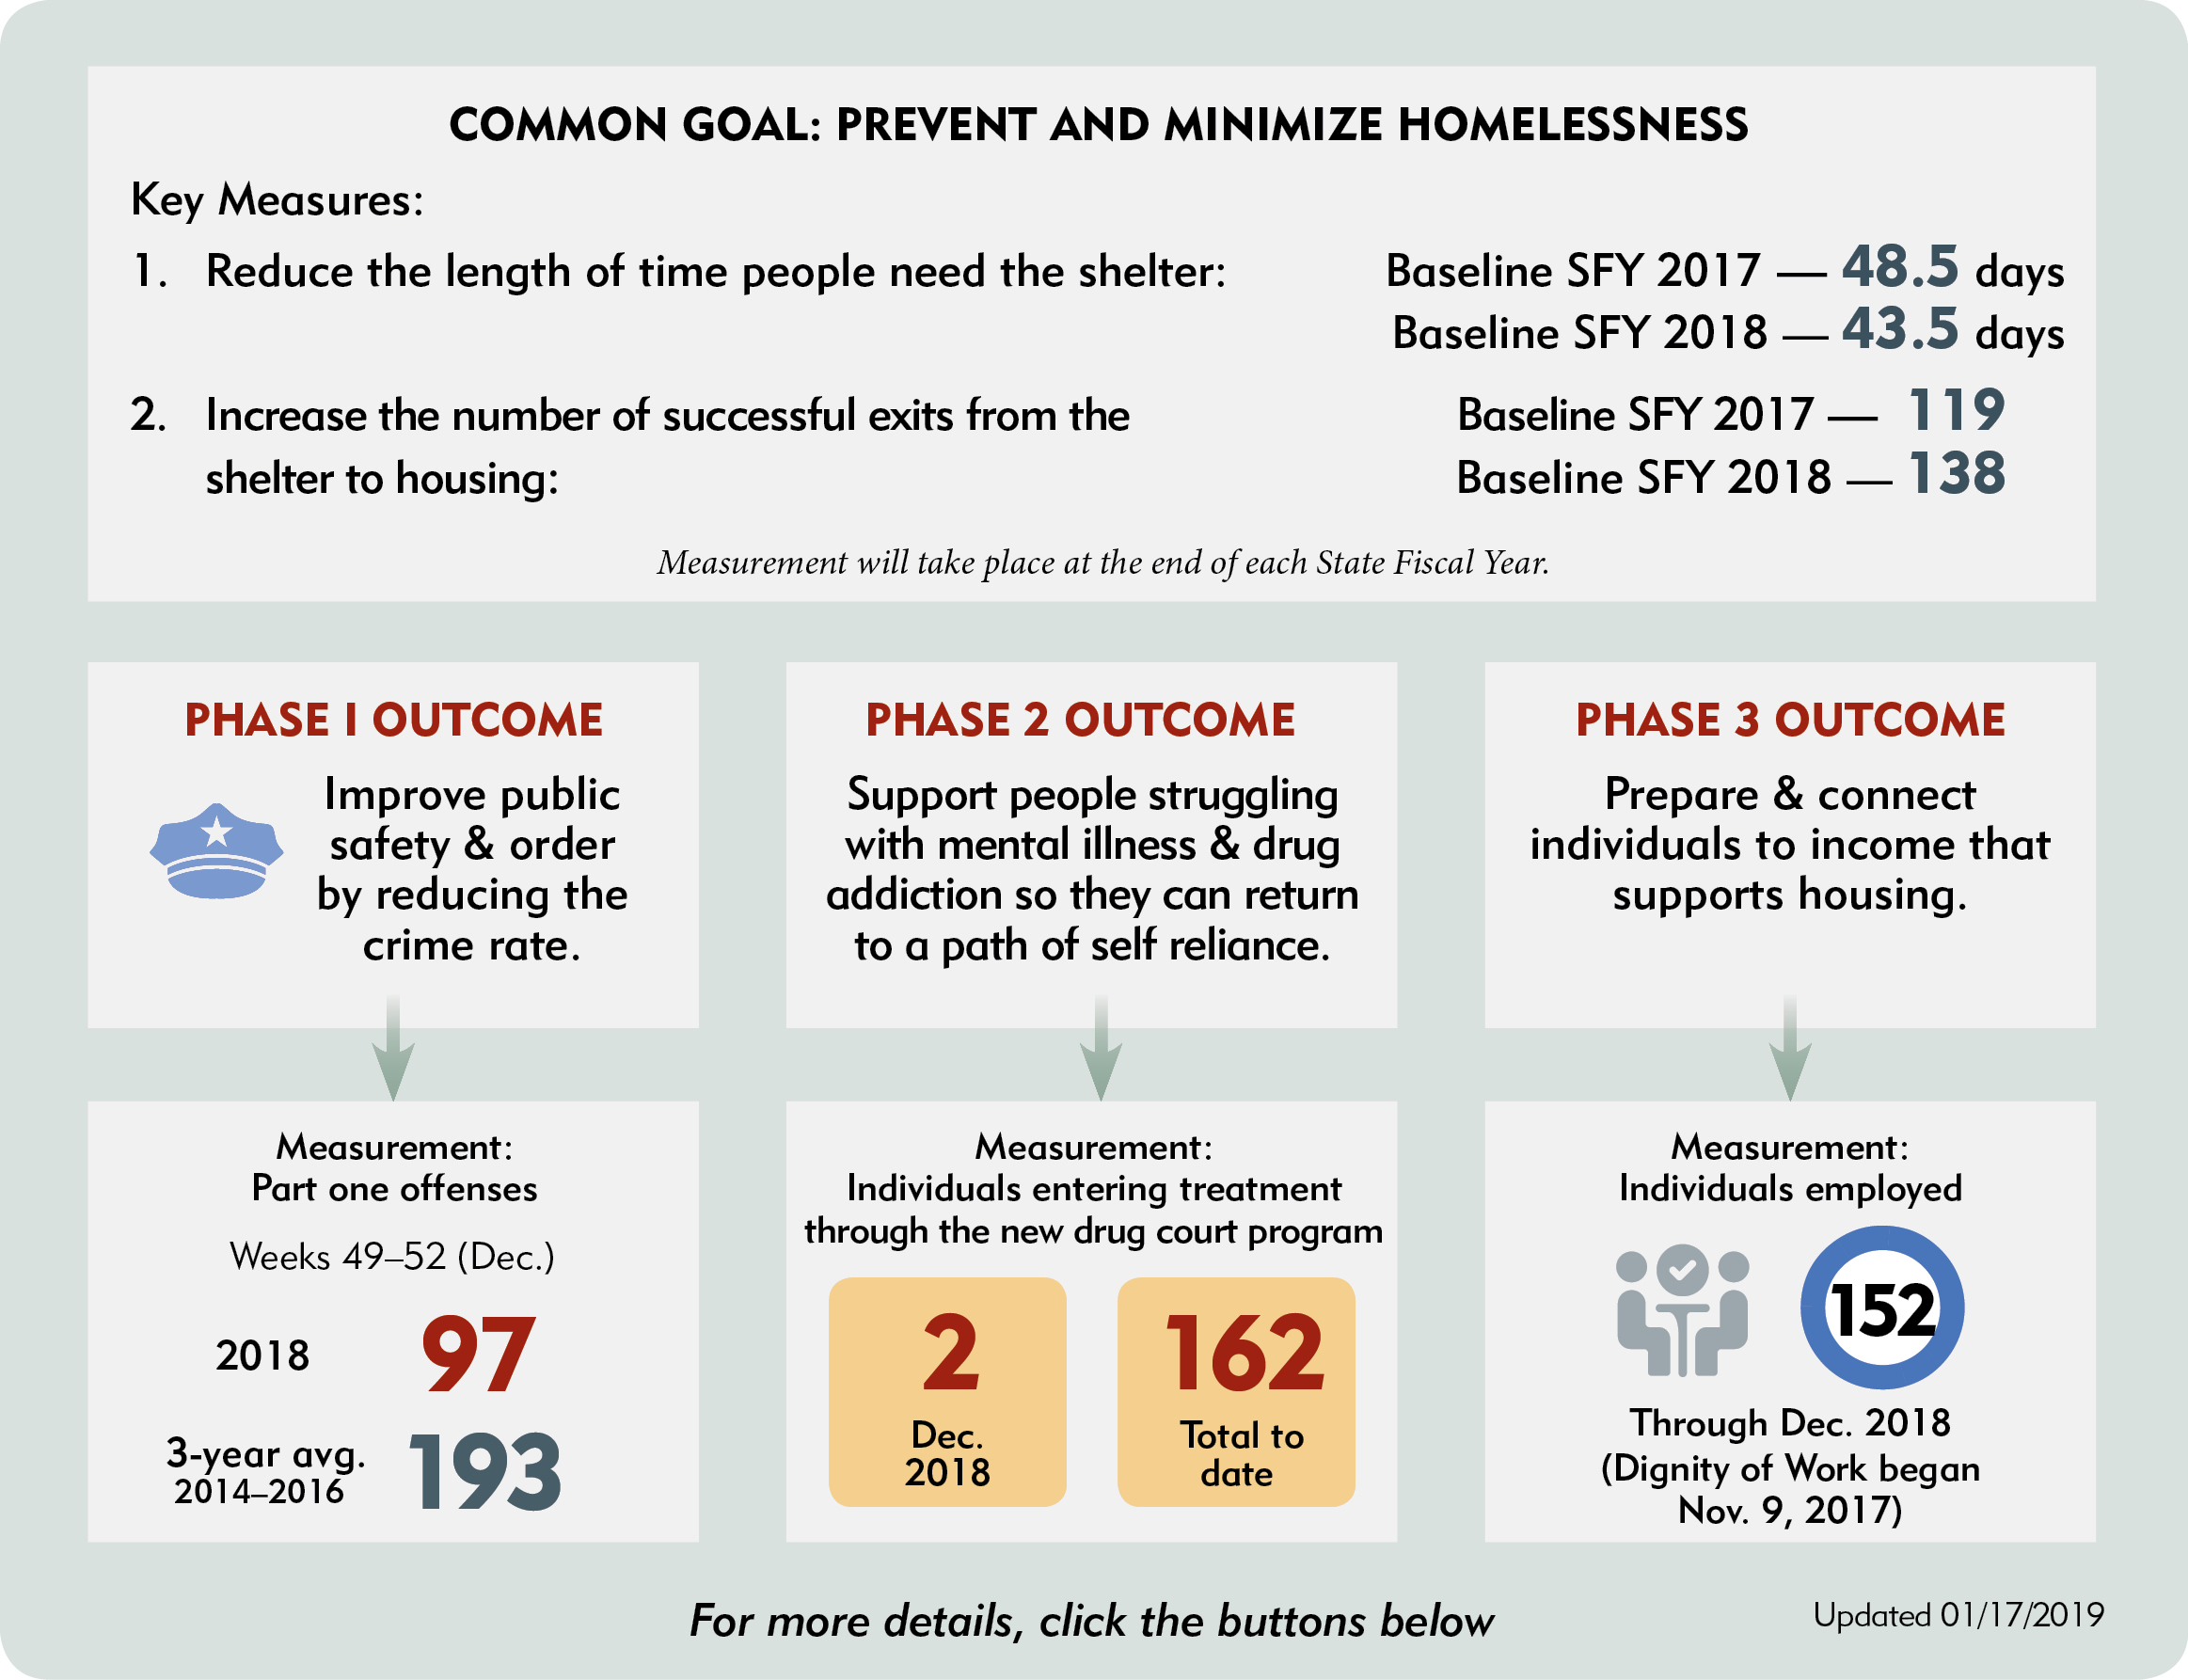 Common goal: prevent and minimize homelessness. Key measures: 1. Reduce the length of time people need the shelter: Baseline SFY 2017 – 48.5 days. Baseline SFY 2018 – 43.5 days. 2. Increase the number of successful exits from the shelter to housing: Baseline SFY 2017 – 119. Baseline SFY 2018 – 138. Phase 1 Outcome: Improve public safety & order by reducing the crime rate. Measurement: Part one offenses. Weeks 49-52(Dec.) 2018 97. 3-year avg. 2014-2016: 196. Phase 2 Outcome: Support people struggling with mental illness & drug addiction so they can return to a path of self-reliance. Measurement: Individuals entering treatment through the new drug court program. 2 in December 2018. 162 individuals total to date. Phase 3 Outcome: Prepare and connect individuals to income that supports housing. Measurement: Individuals employed. Through the Dignity of Work program 150 individuals have completed the program from November 2017 to December 2018.